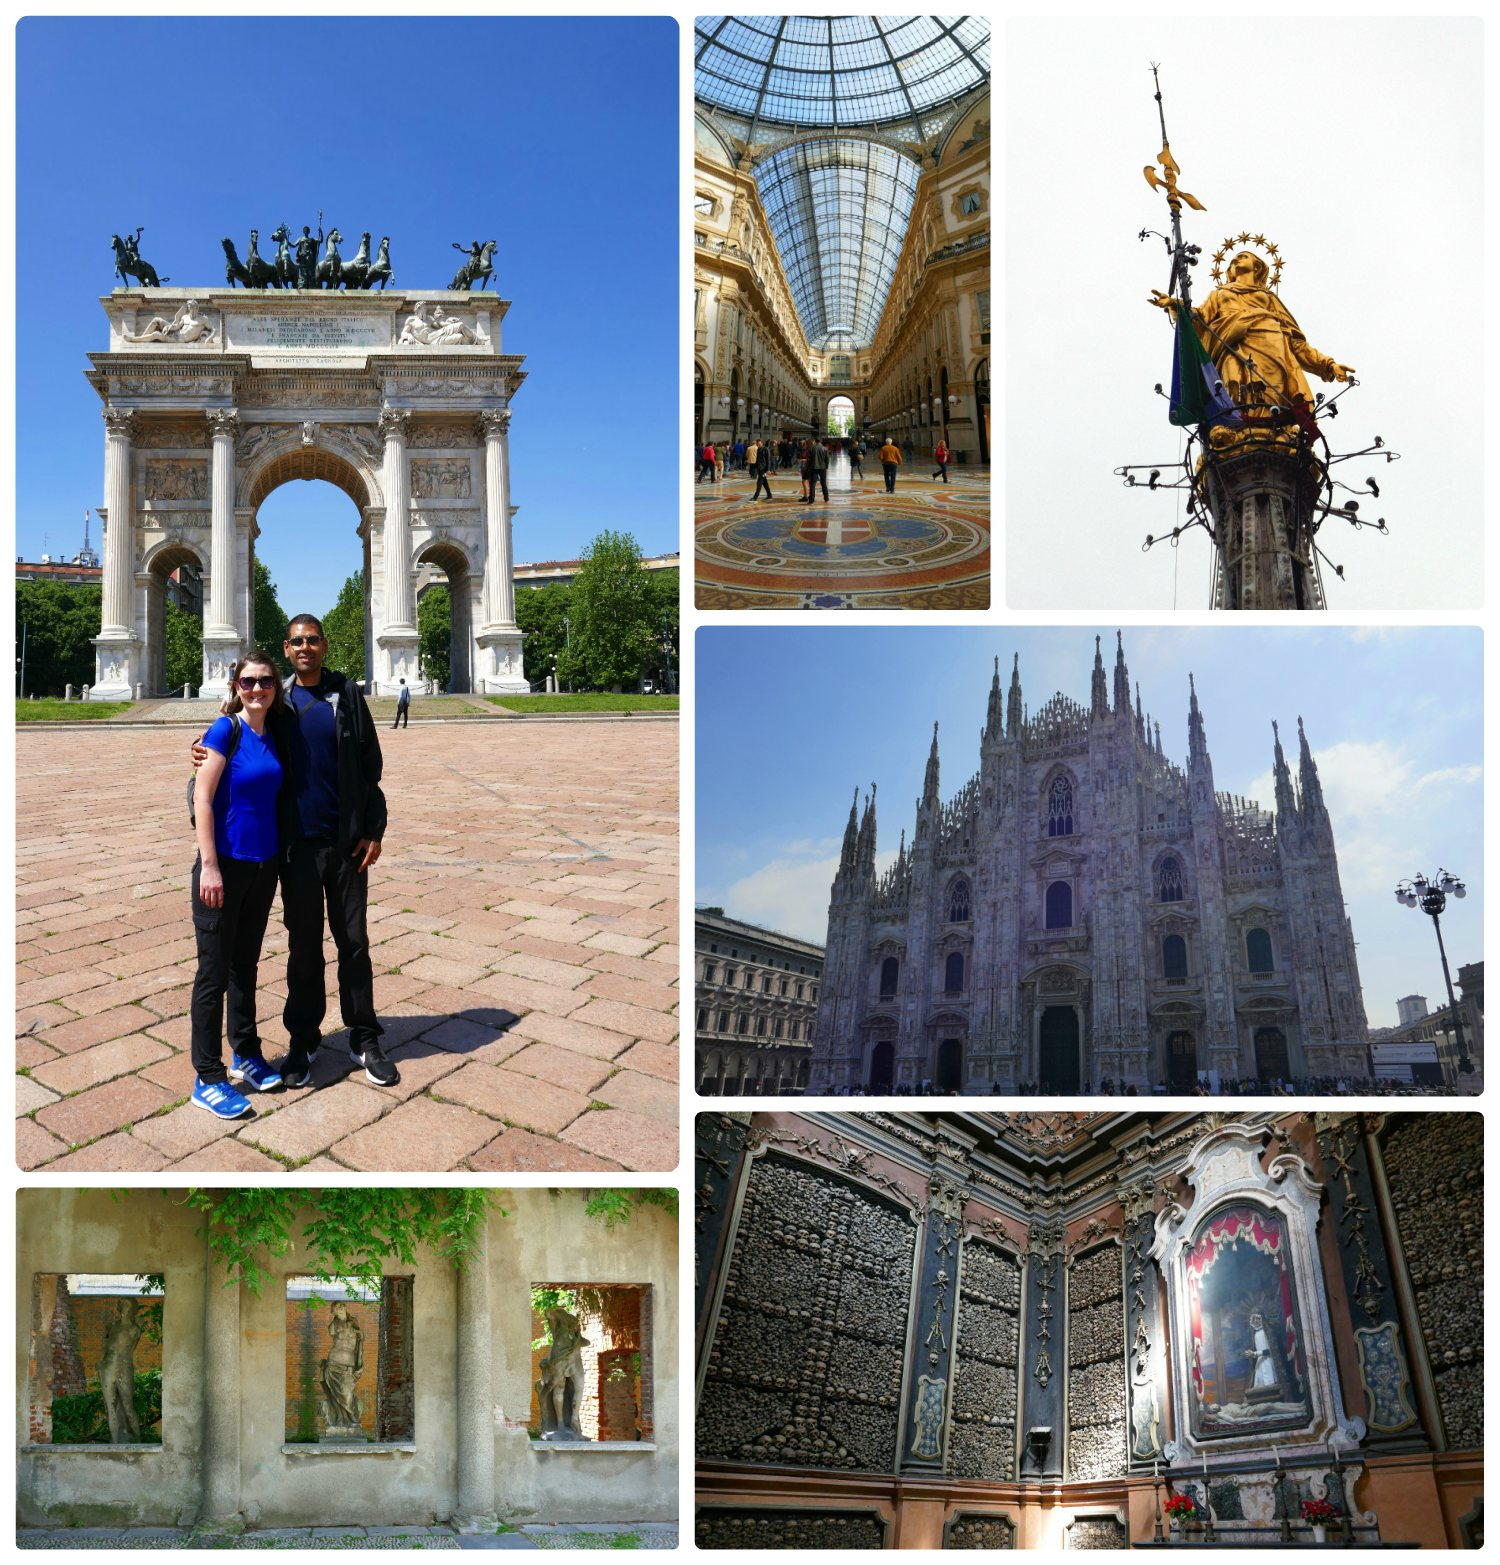 Our time in  Milan ! Clockwise (from the top): Us at Arco Della Pace, the Galleria Vittorio Emanuele II, the Little Madonna that tops the Milan Cathedral (Duomo), the Milan Cathedral (Duomo), San Bernardino alle Ossa, statues in the Casa Dei Corii Park.